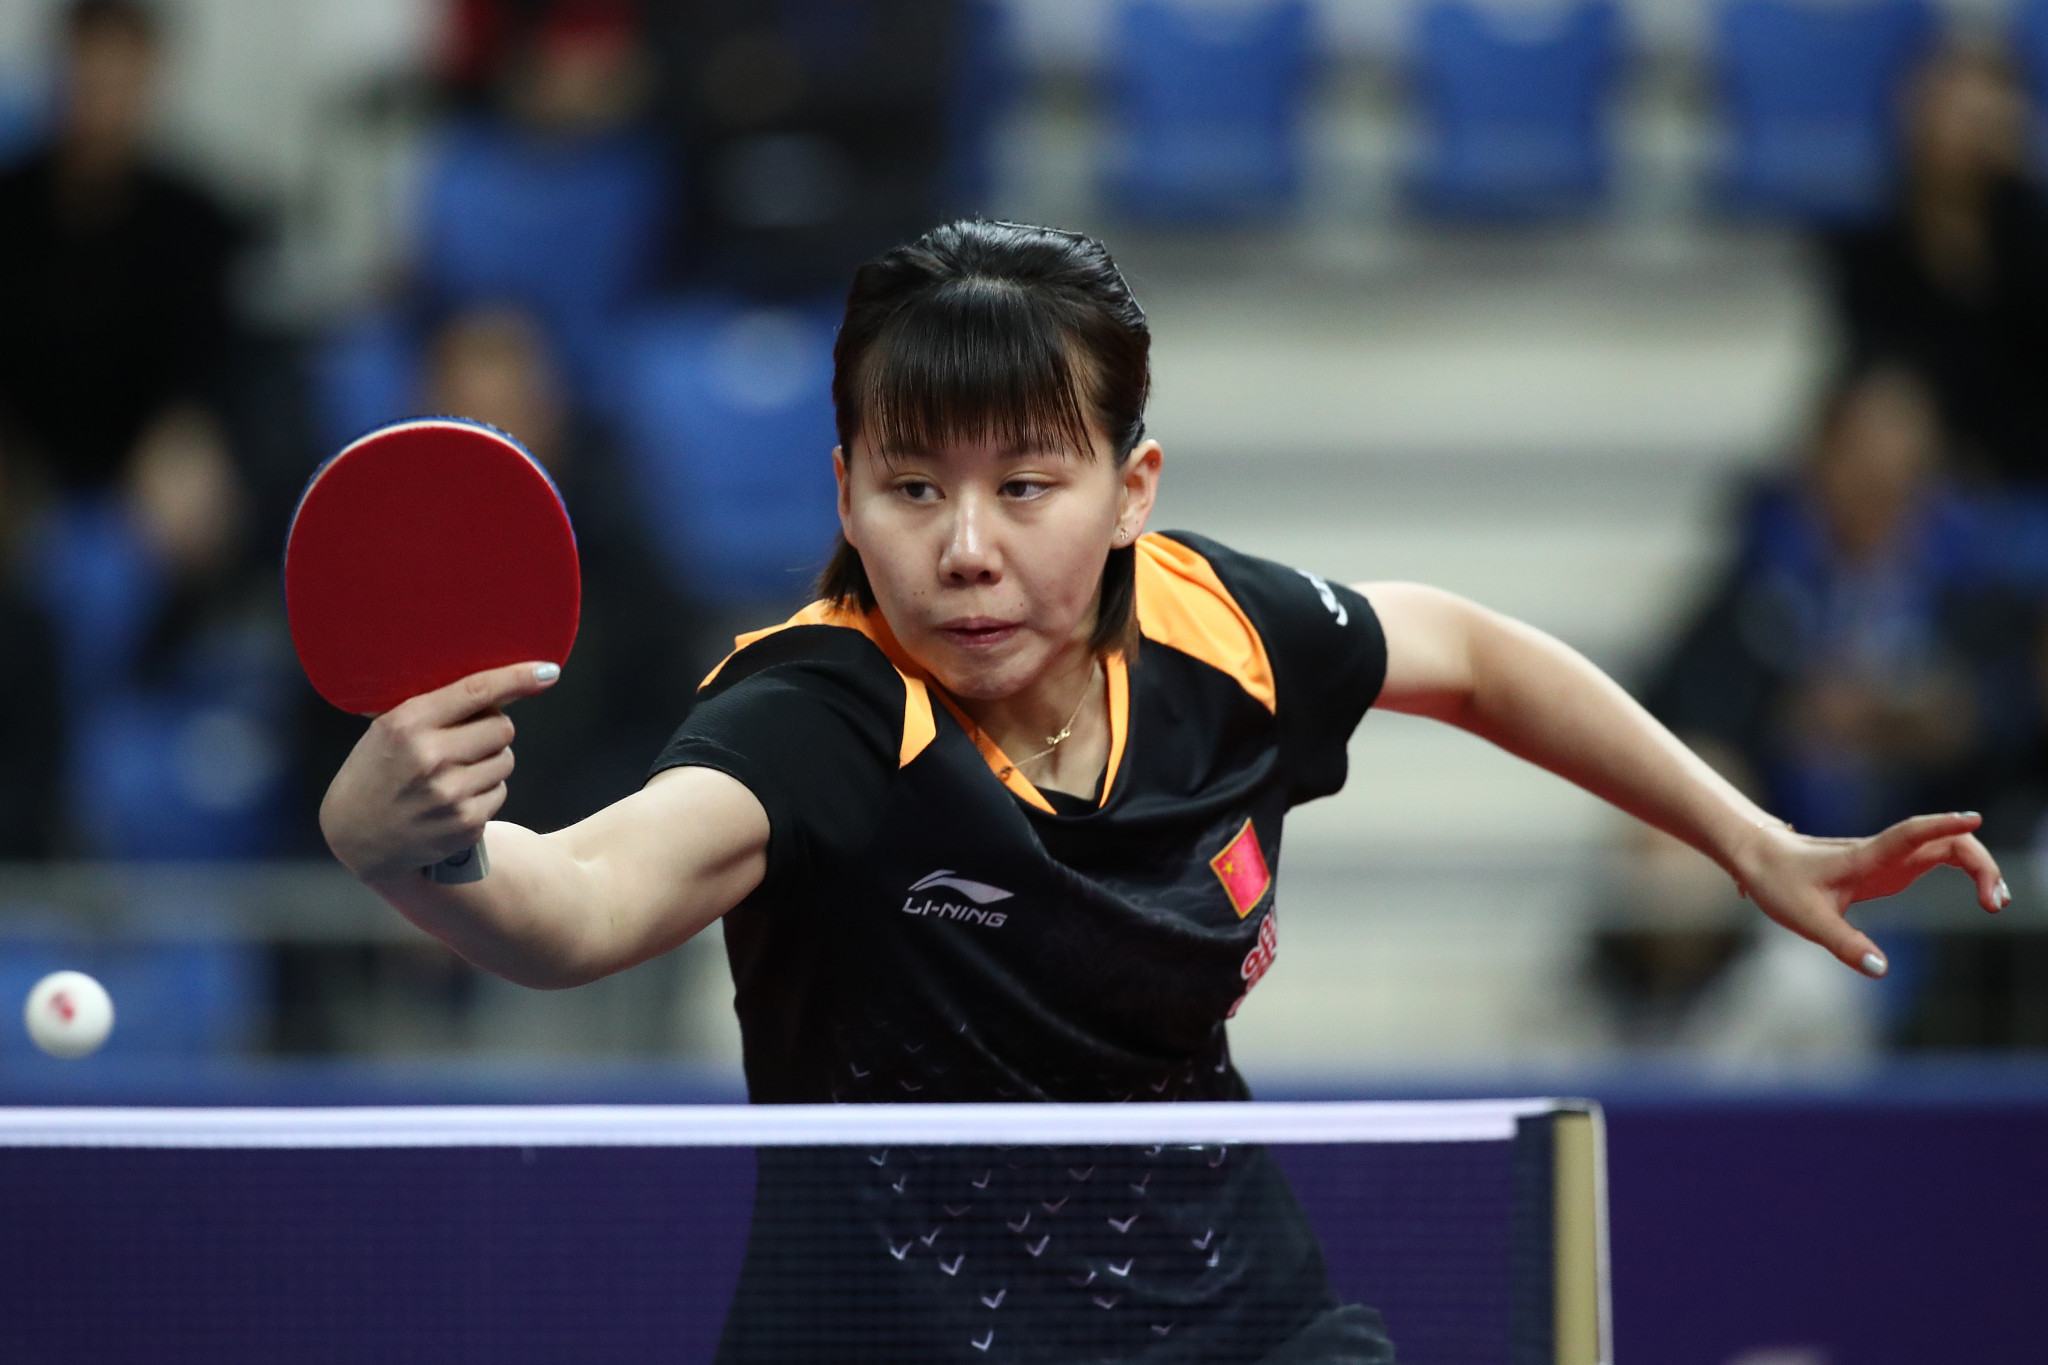 Chen Xingtong of China won the ITTF Czech Open women's event ©Getty Images